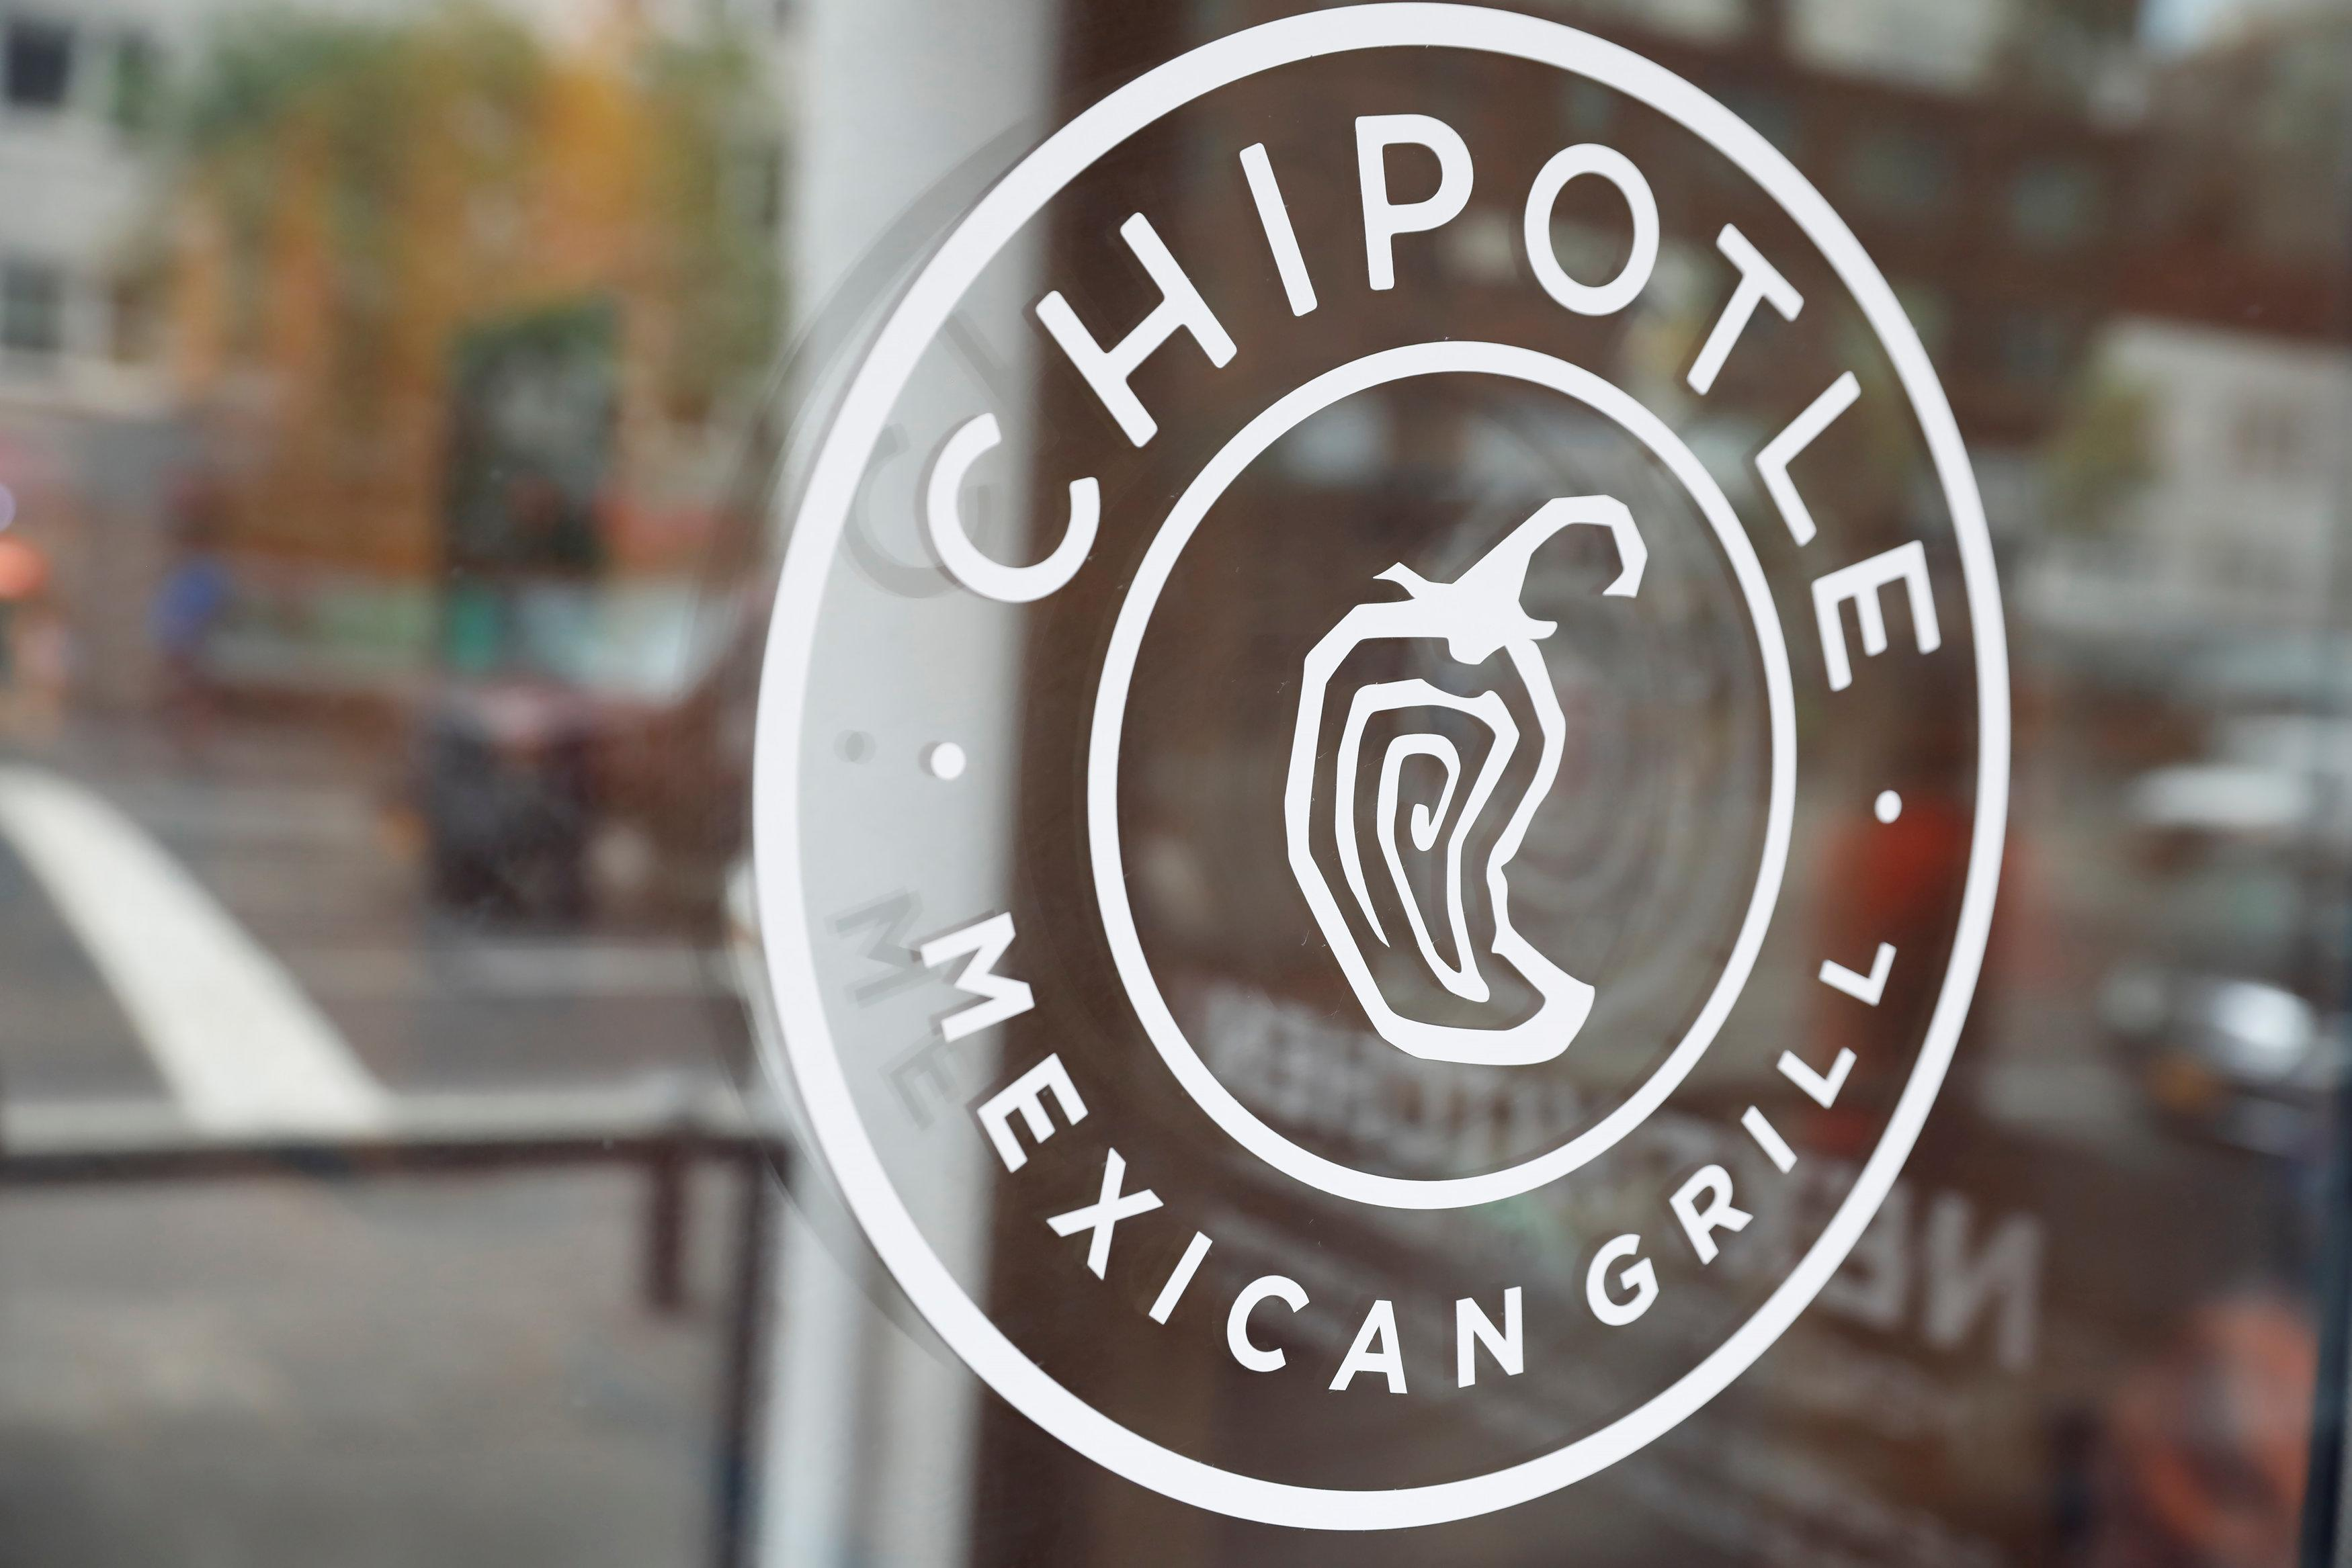 Chipotle Free Guacamole On National Avocado Day Video